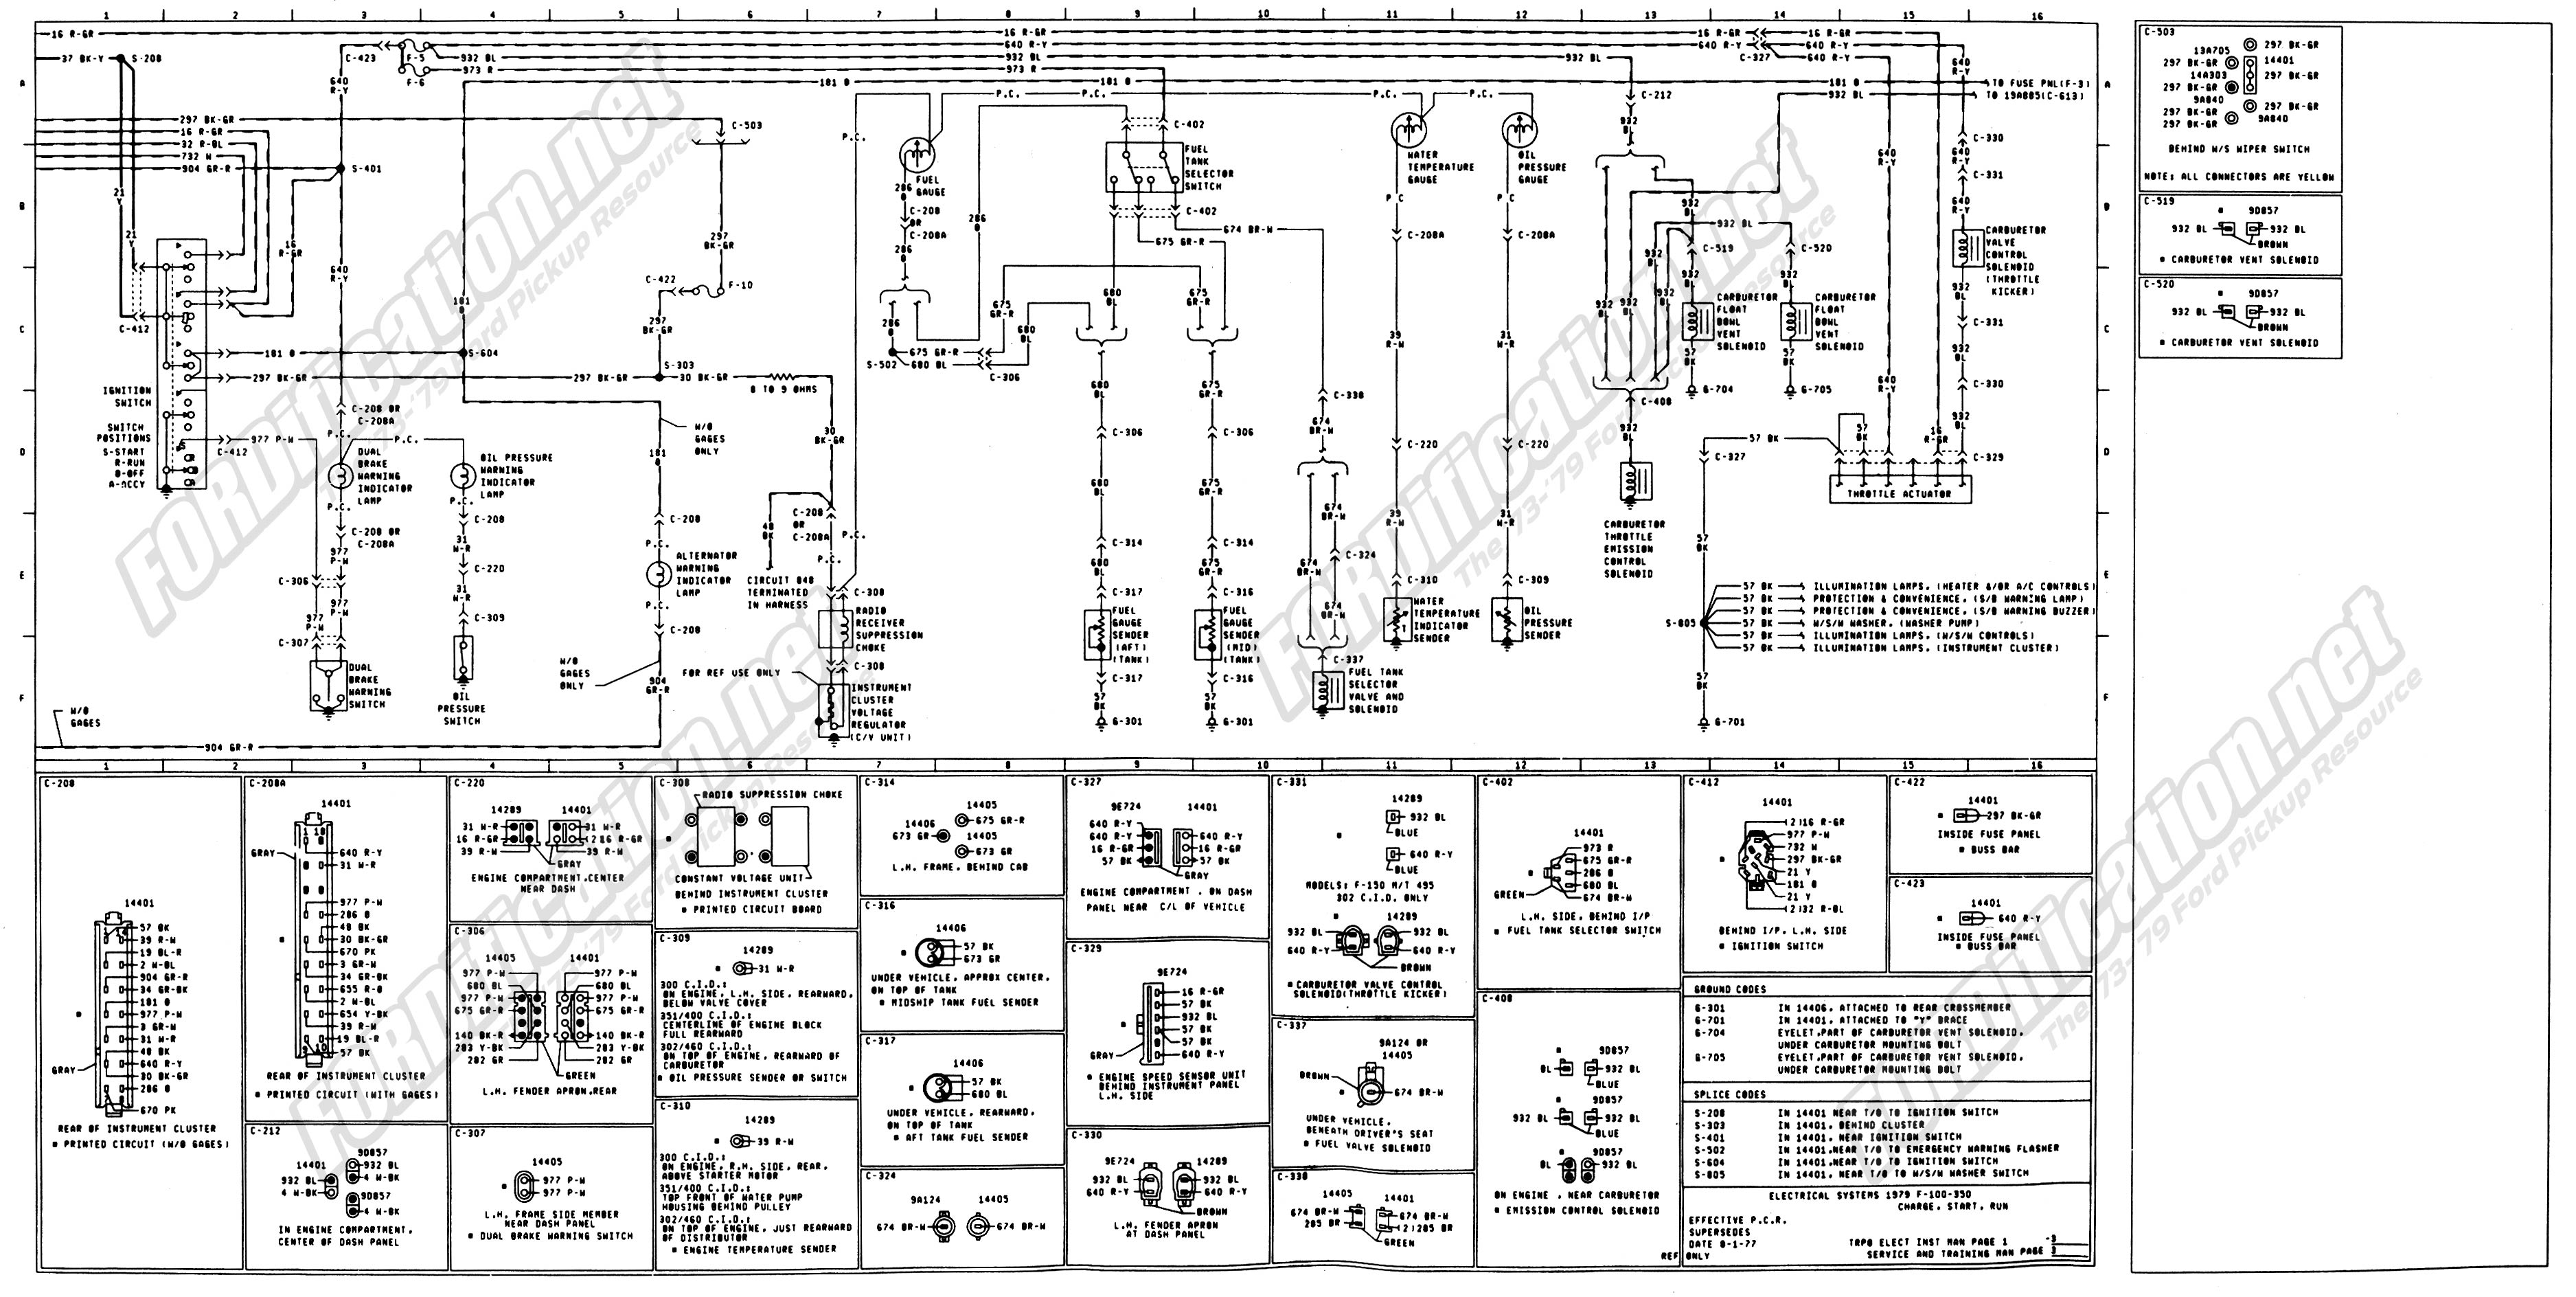 86 F350 Ignition Wiring Schematic as well 5feo5 Ford F150 Lariat 2004 F150 Will Not Start Will Not Turn furthermore 253621 Wiring Diagram Needed Hei Voltmeter Mercuiser 288 350 Sbc as well Discussion T813 ds497472 together with 1997 Ford F150 Instrument Cluster. on ford f 150 starter solenoid